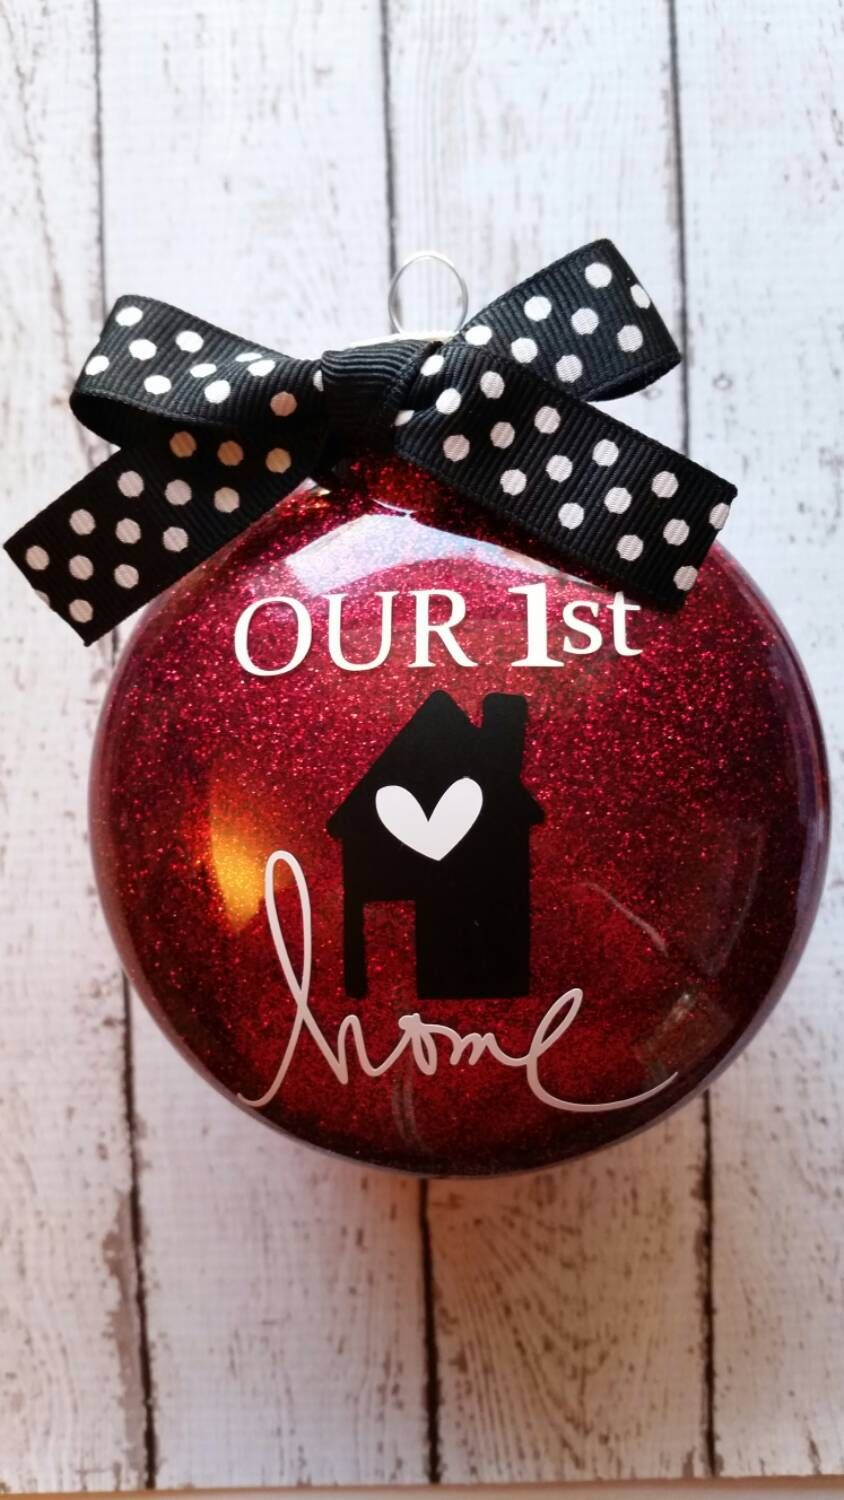 Our First Home Ornament First Home New Home Christmas Ornament Housewarming Gift 1st House Christmas Ornaments Diy Christmas Ornaments Christmas Diy